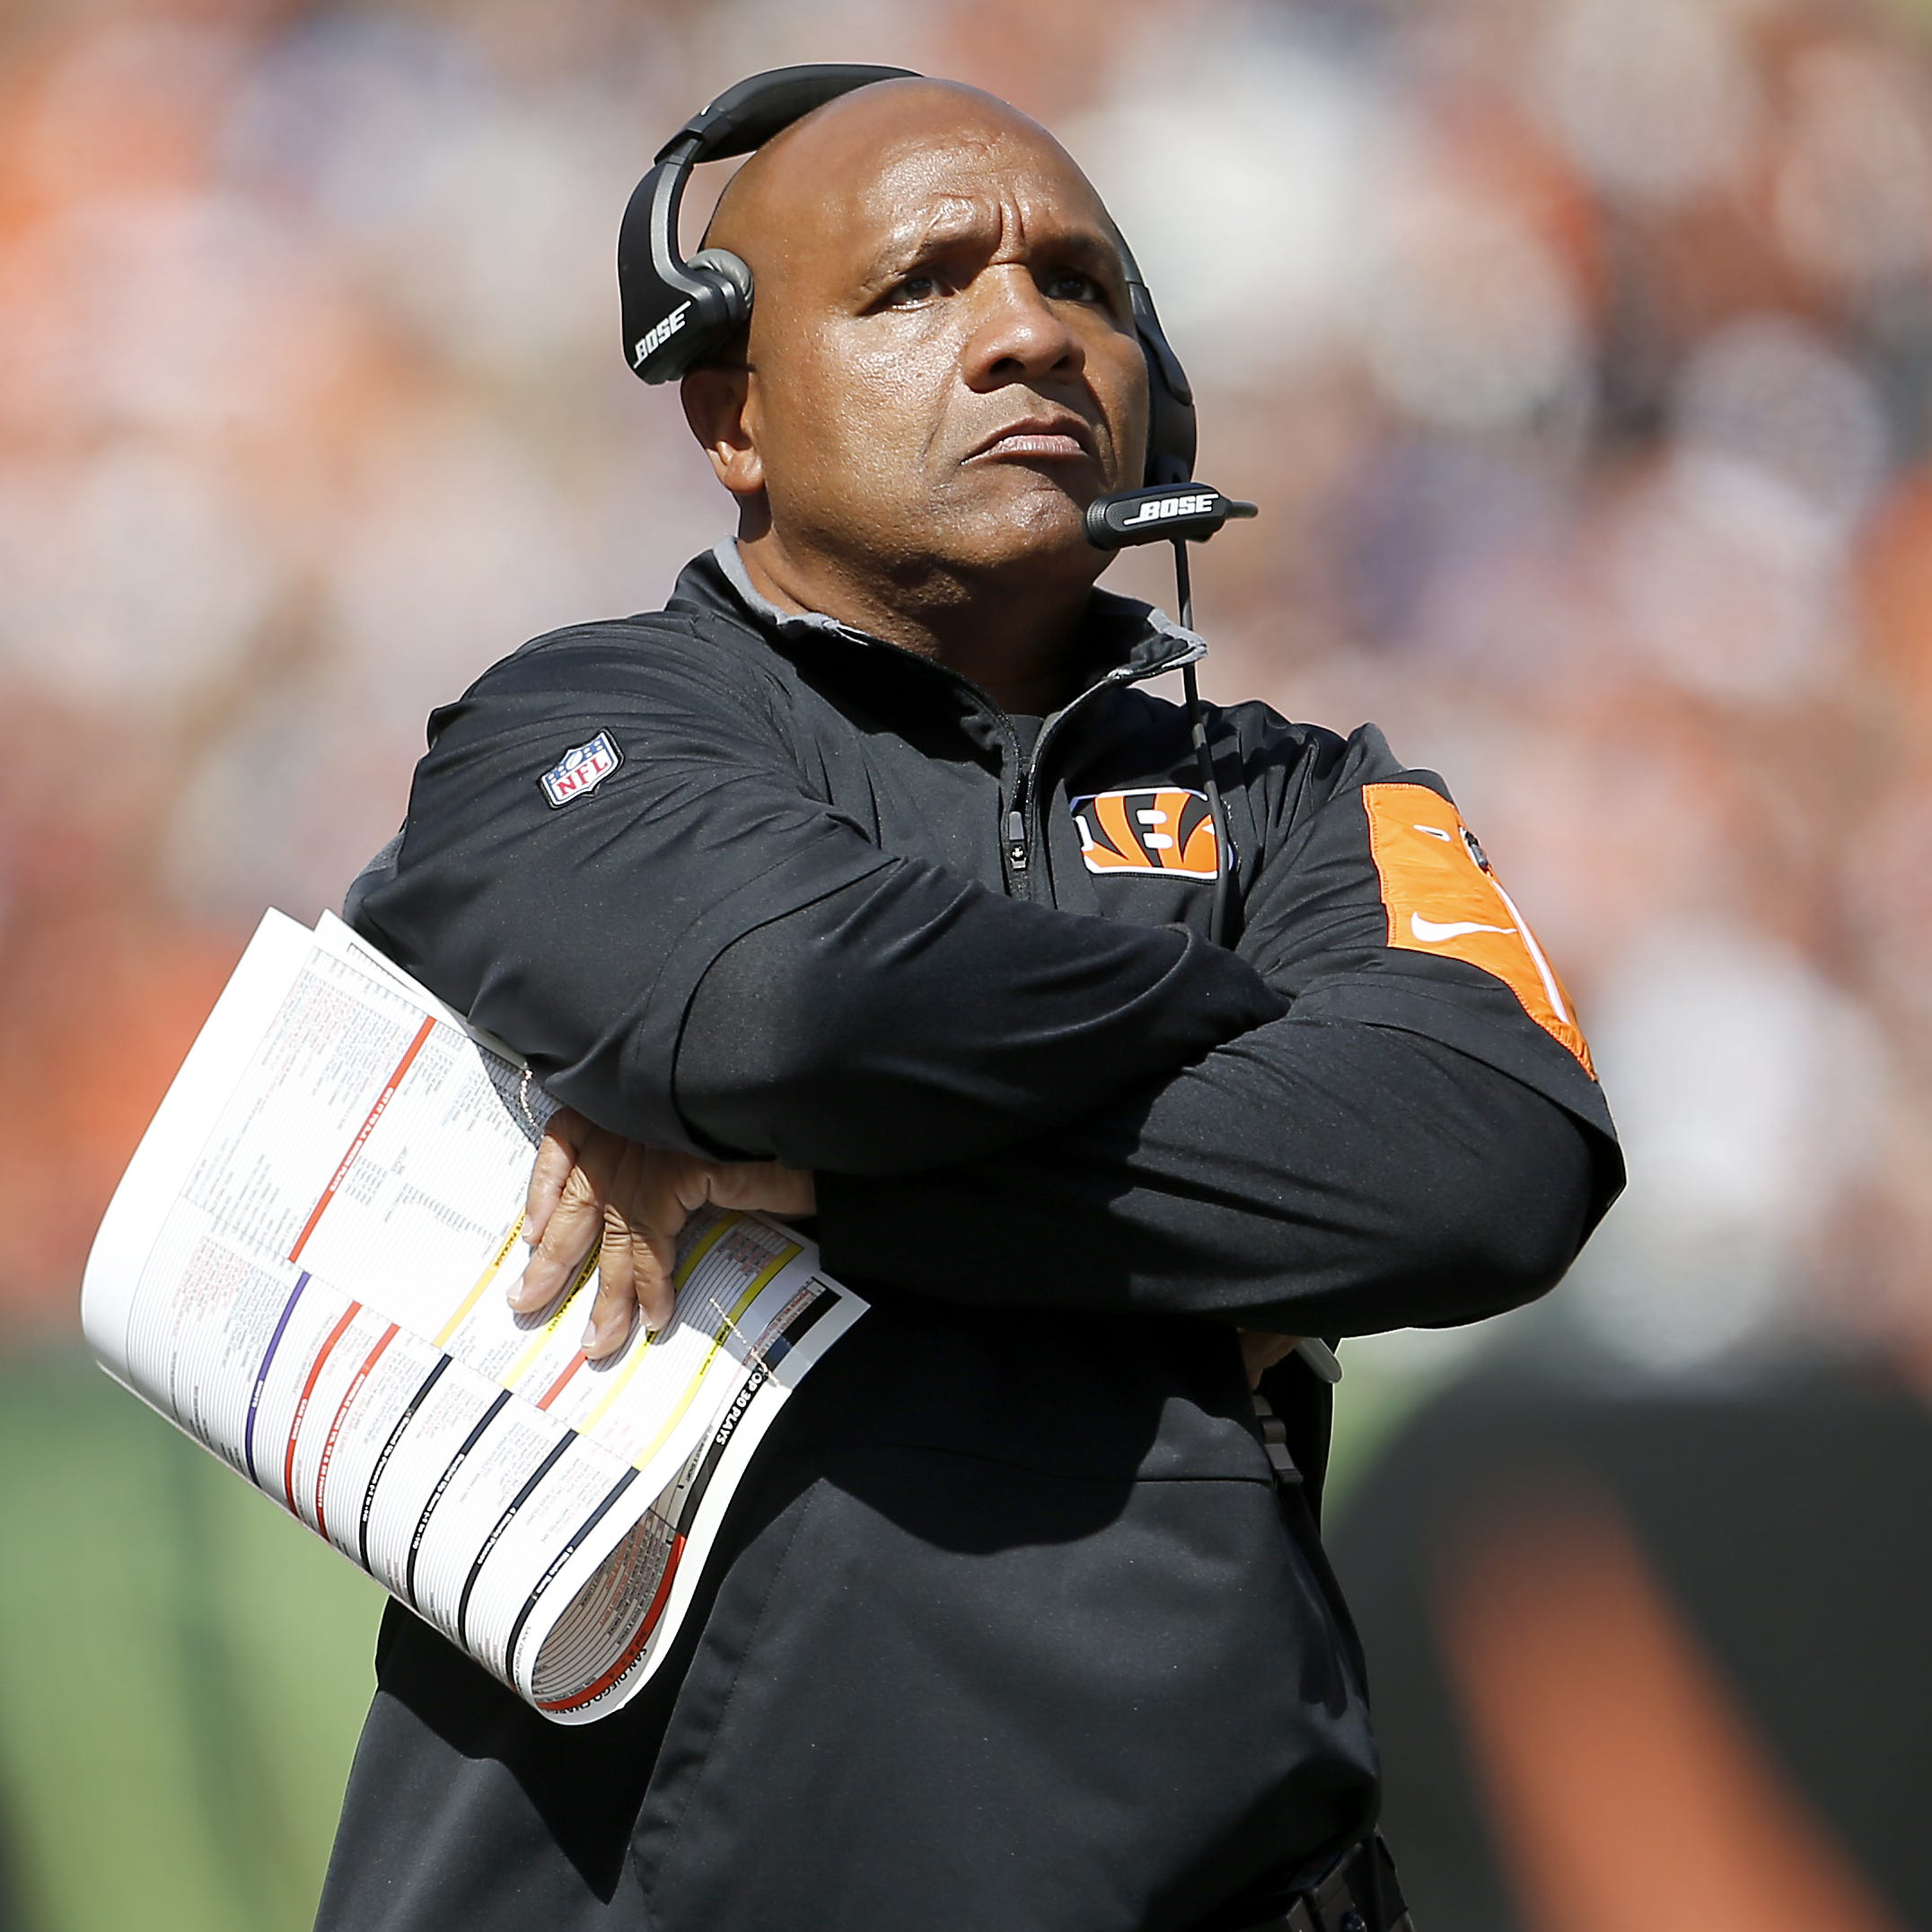 2018 Cincinnati Bengals: What exactly is Hue Jackson's role?